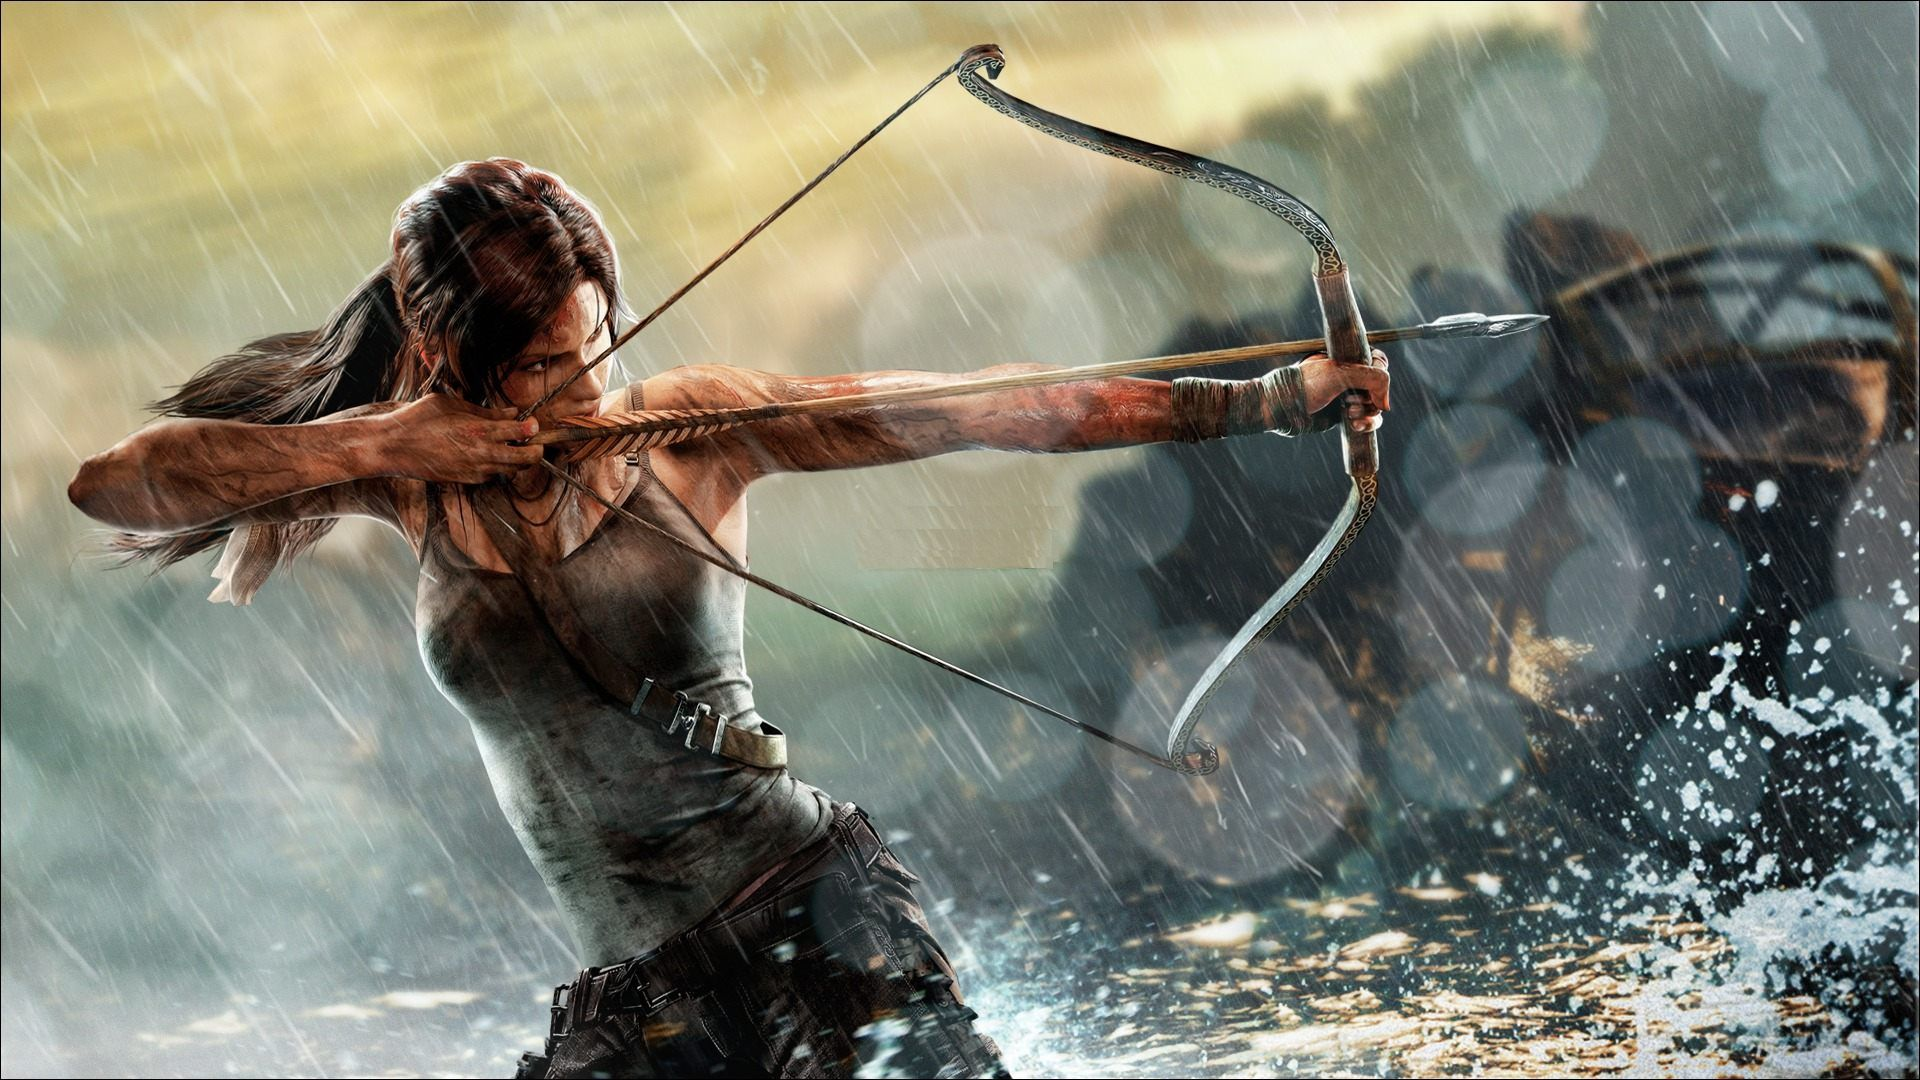 Rise Of The Tomb Raider Turning Point Gaming Wallpaper Hd Tomb Raider Wallpaper Lara Croft Wallpaper Raiders Wallpaper